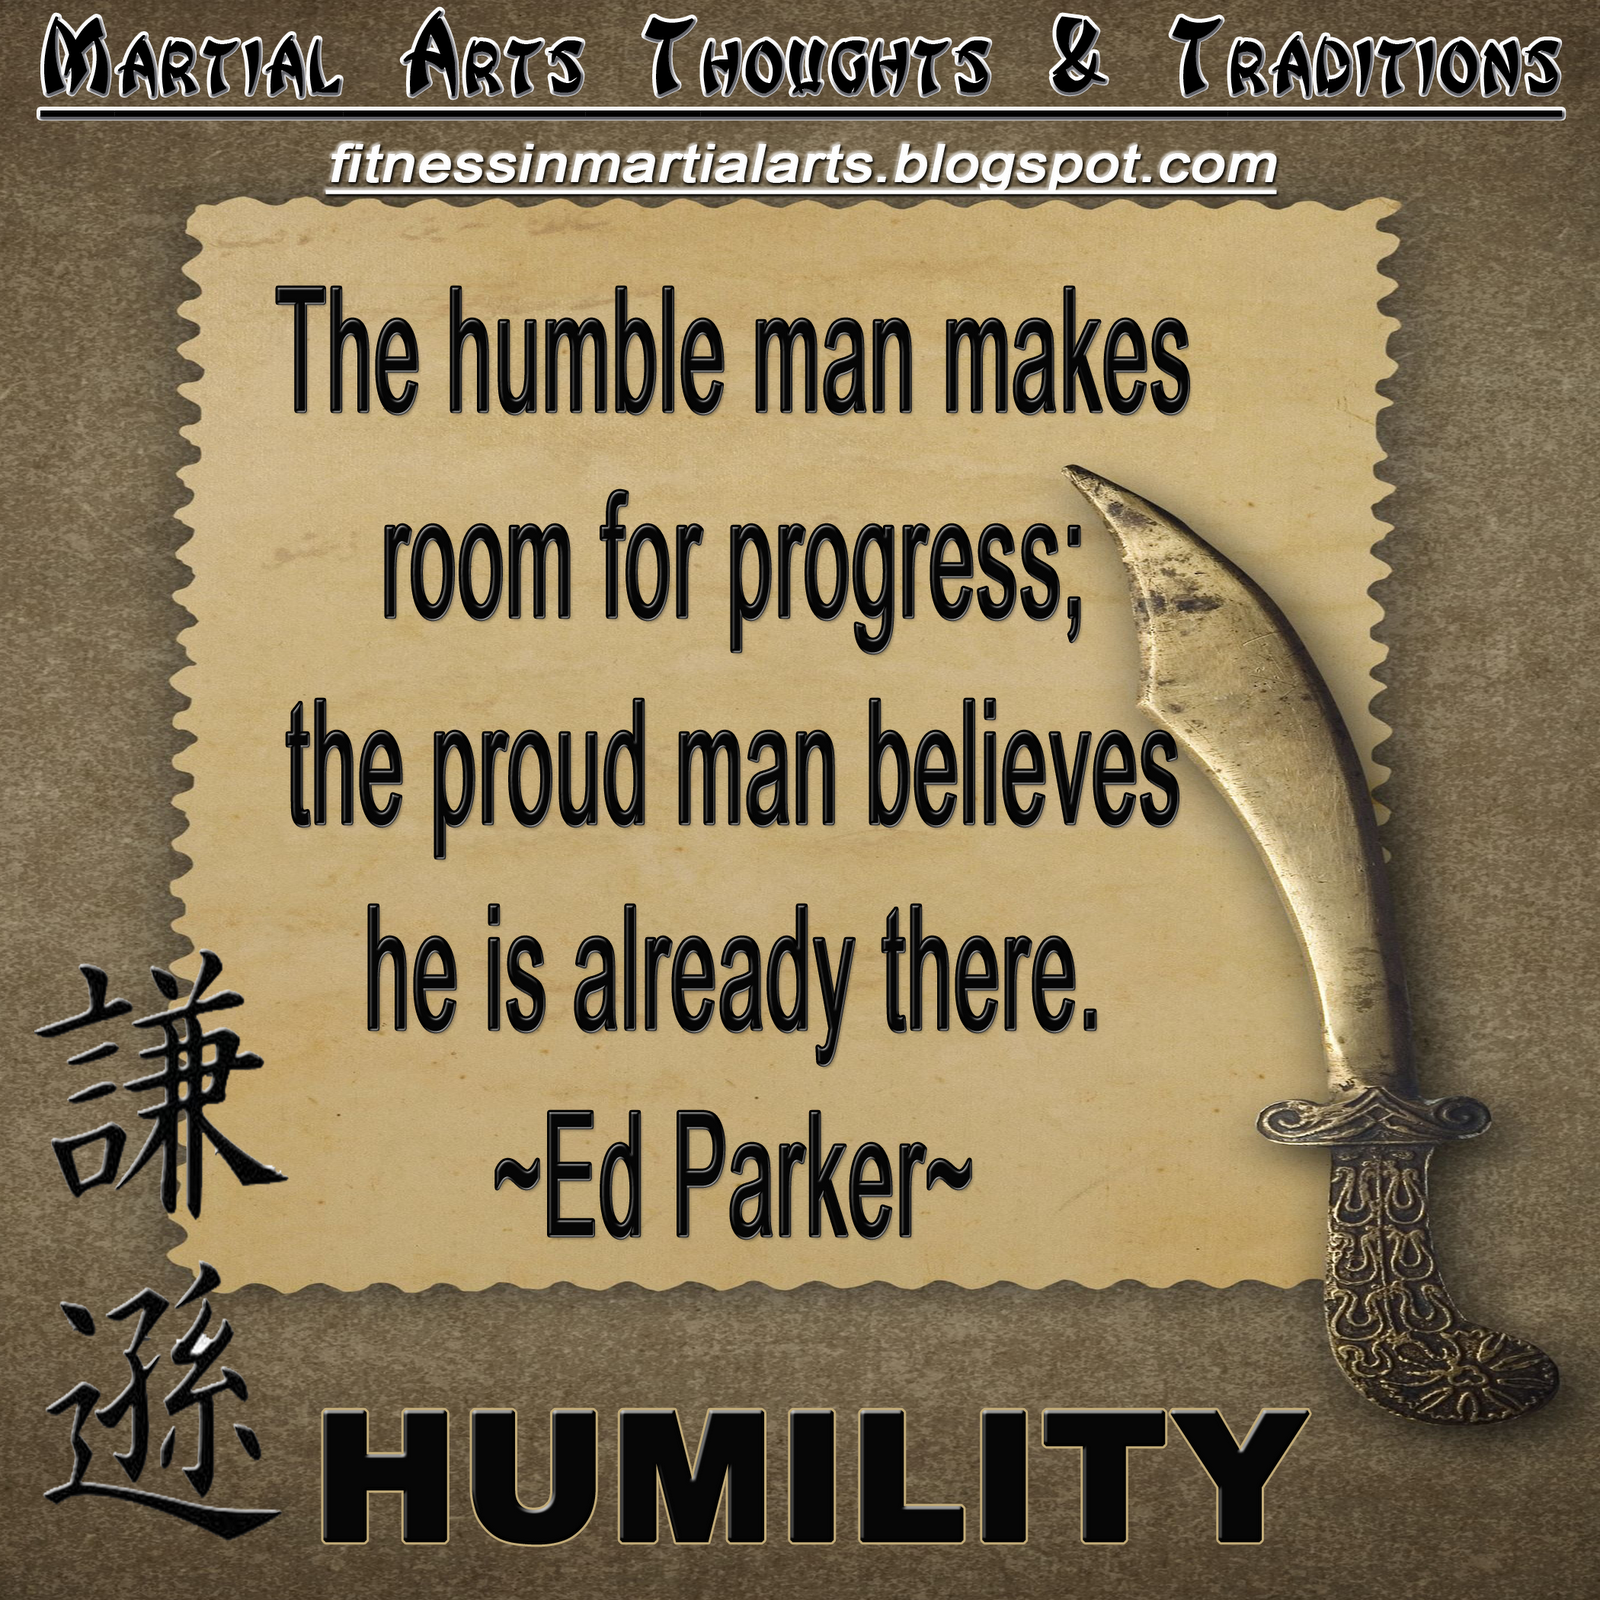 Humility in the Martial Arts Ed Parker Quote (With